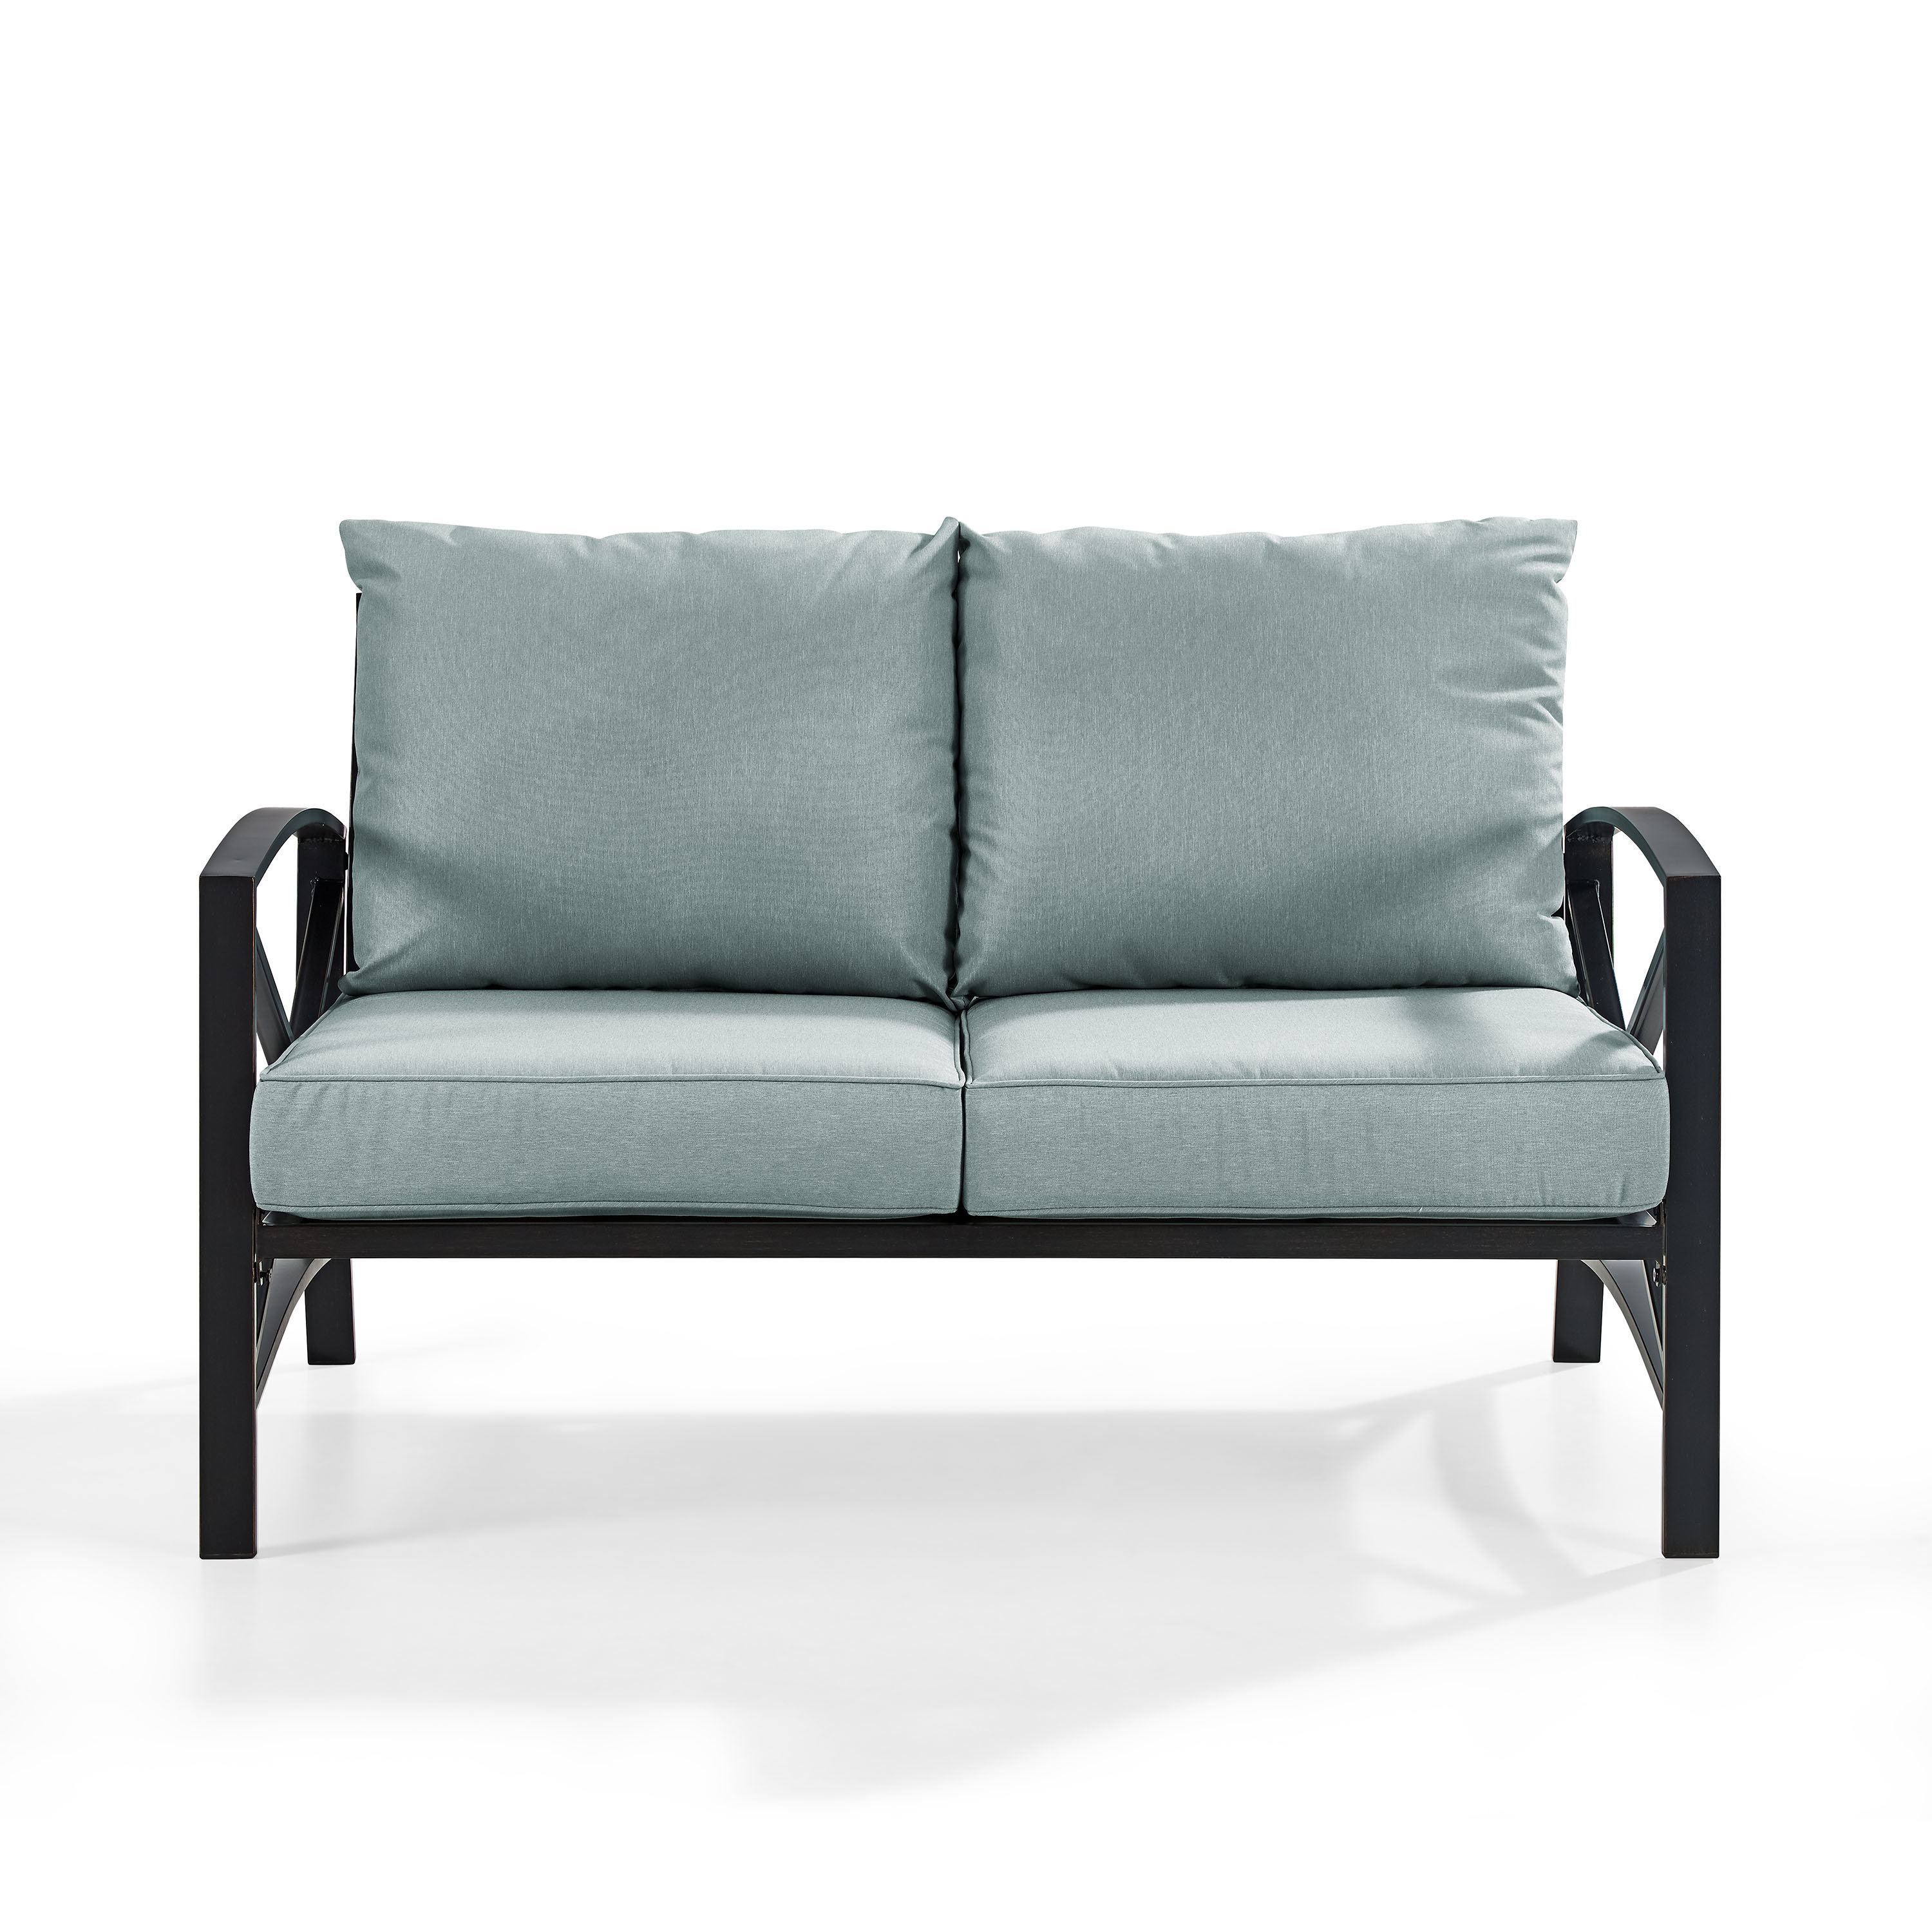 Allmodern For Kunz Loveseats With Cushions (View 3 of 20)